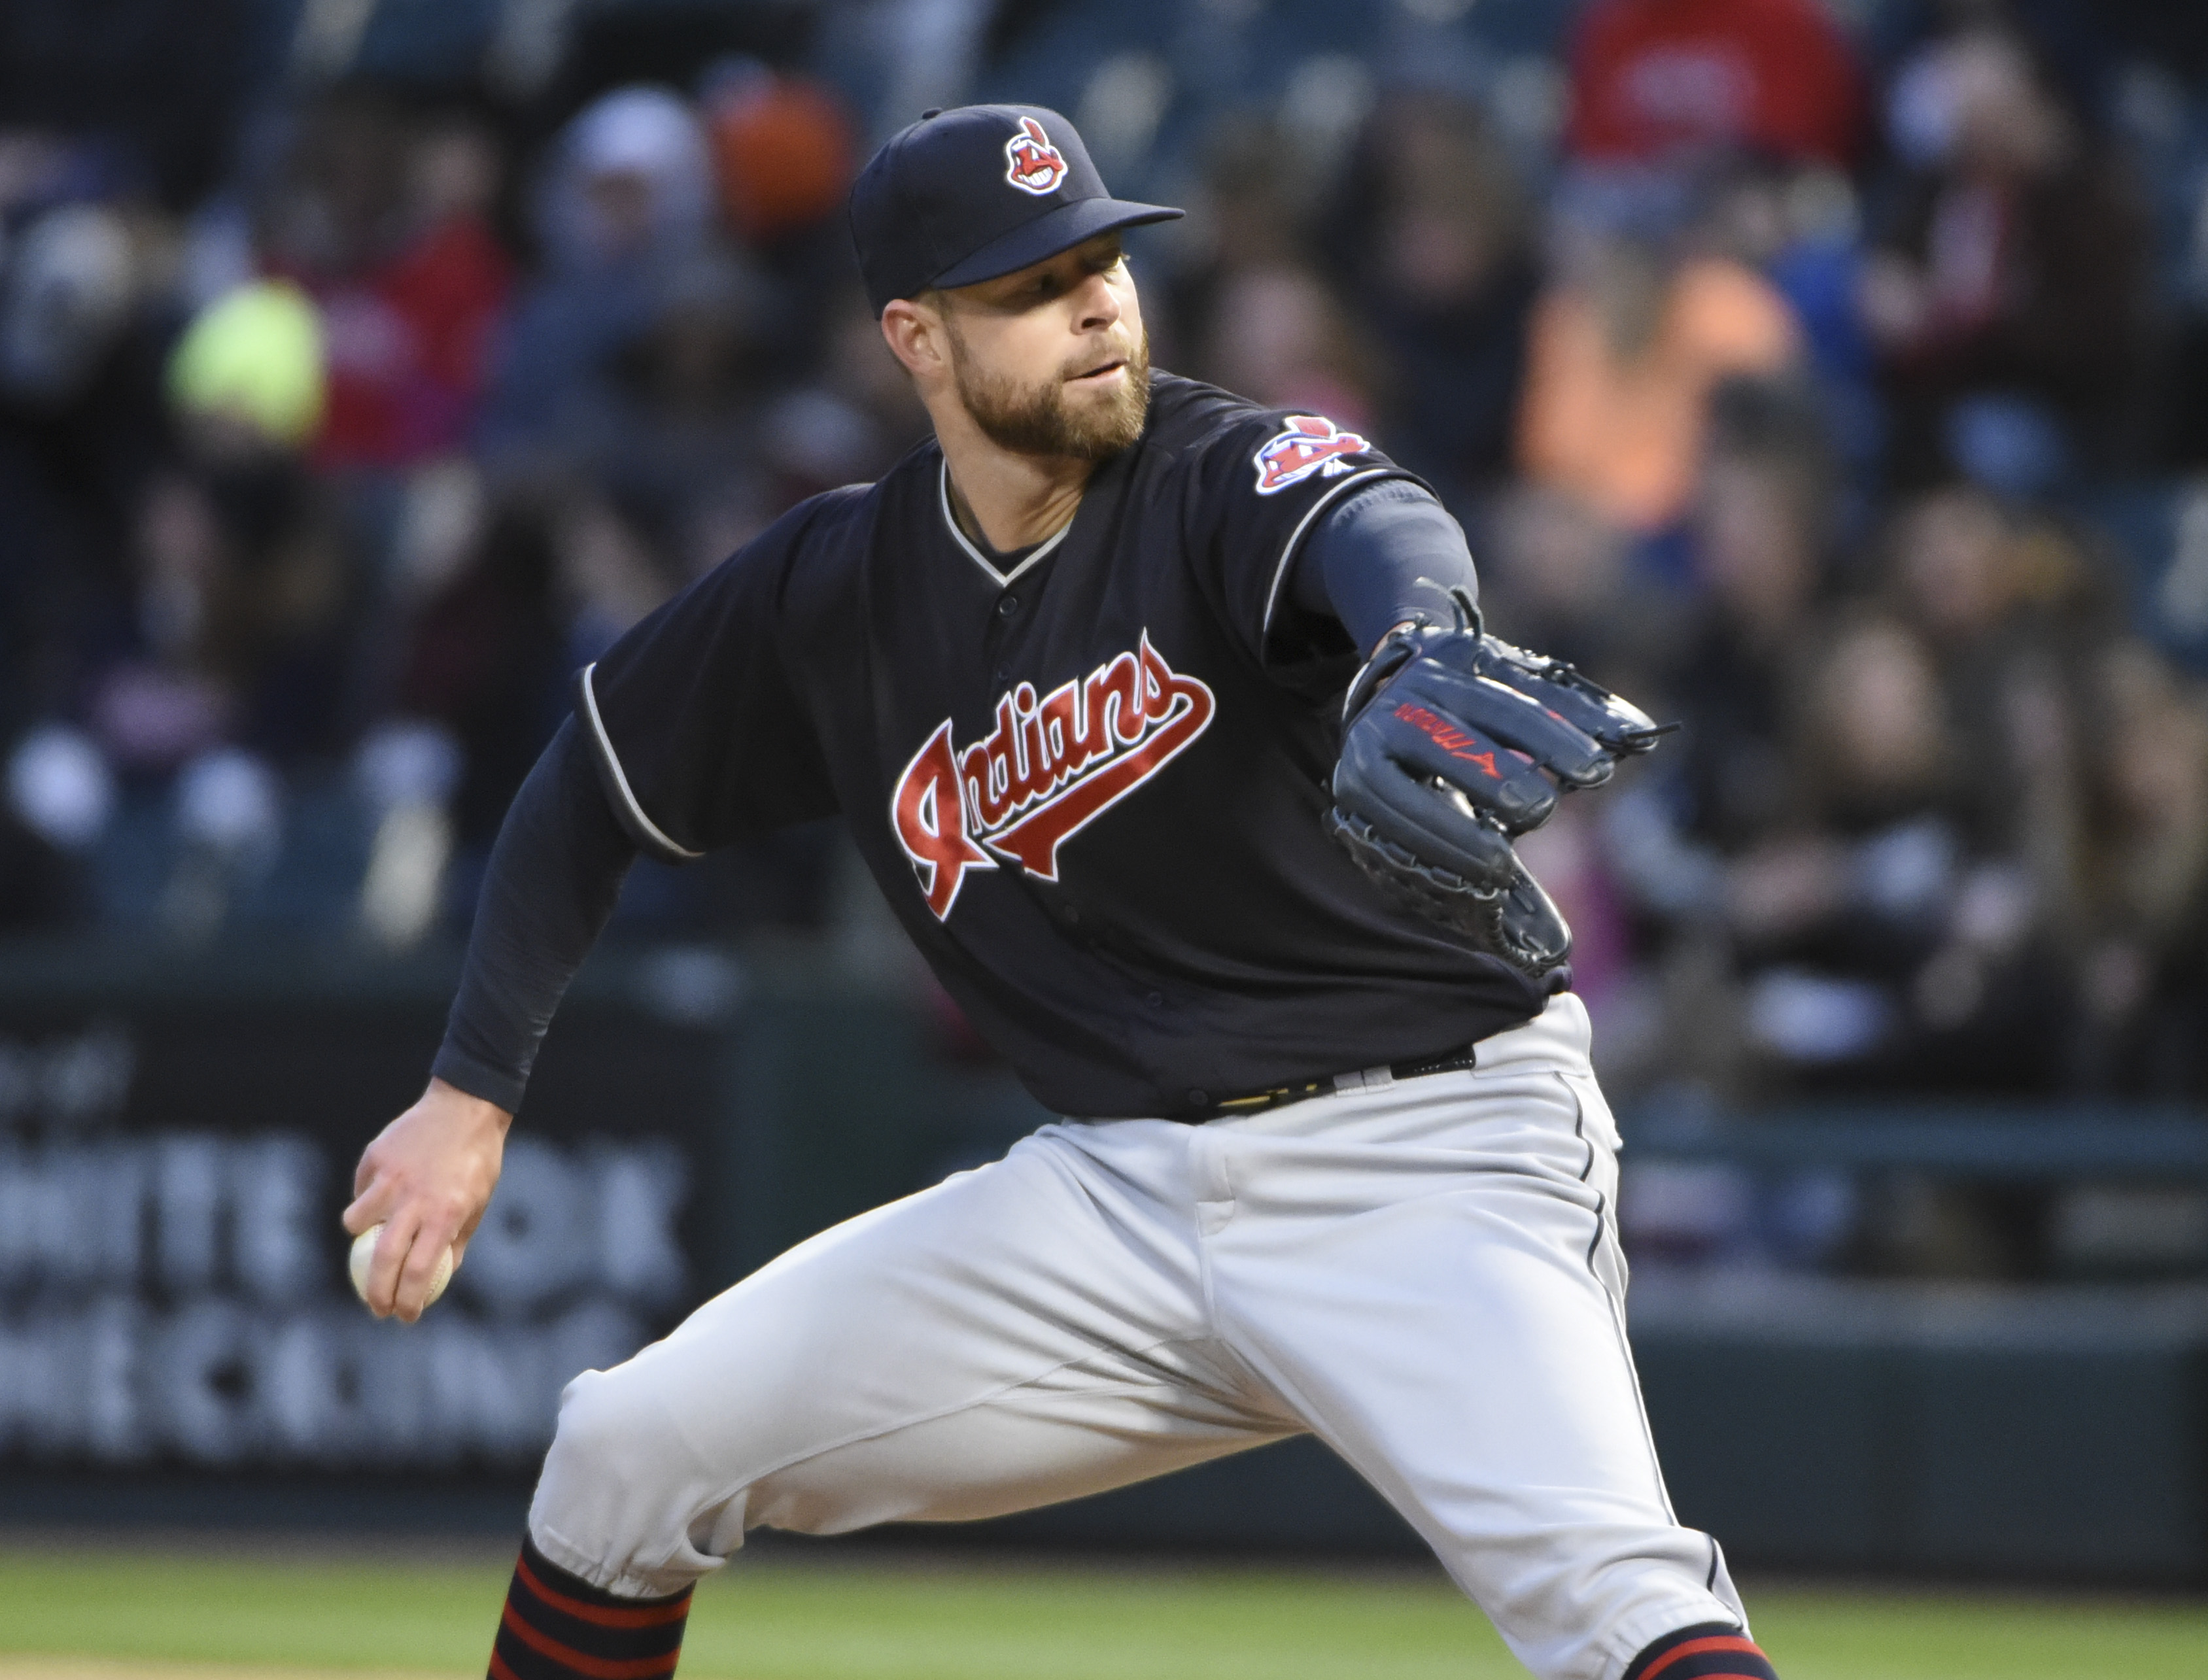 #TribeTopThree Game 16: Chicago Is Kluber's Kind Of Town